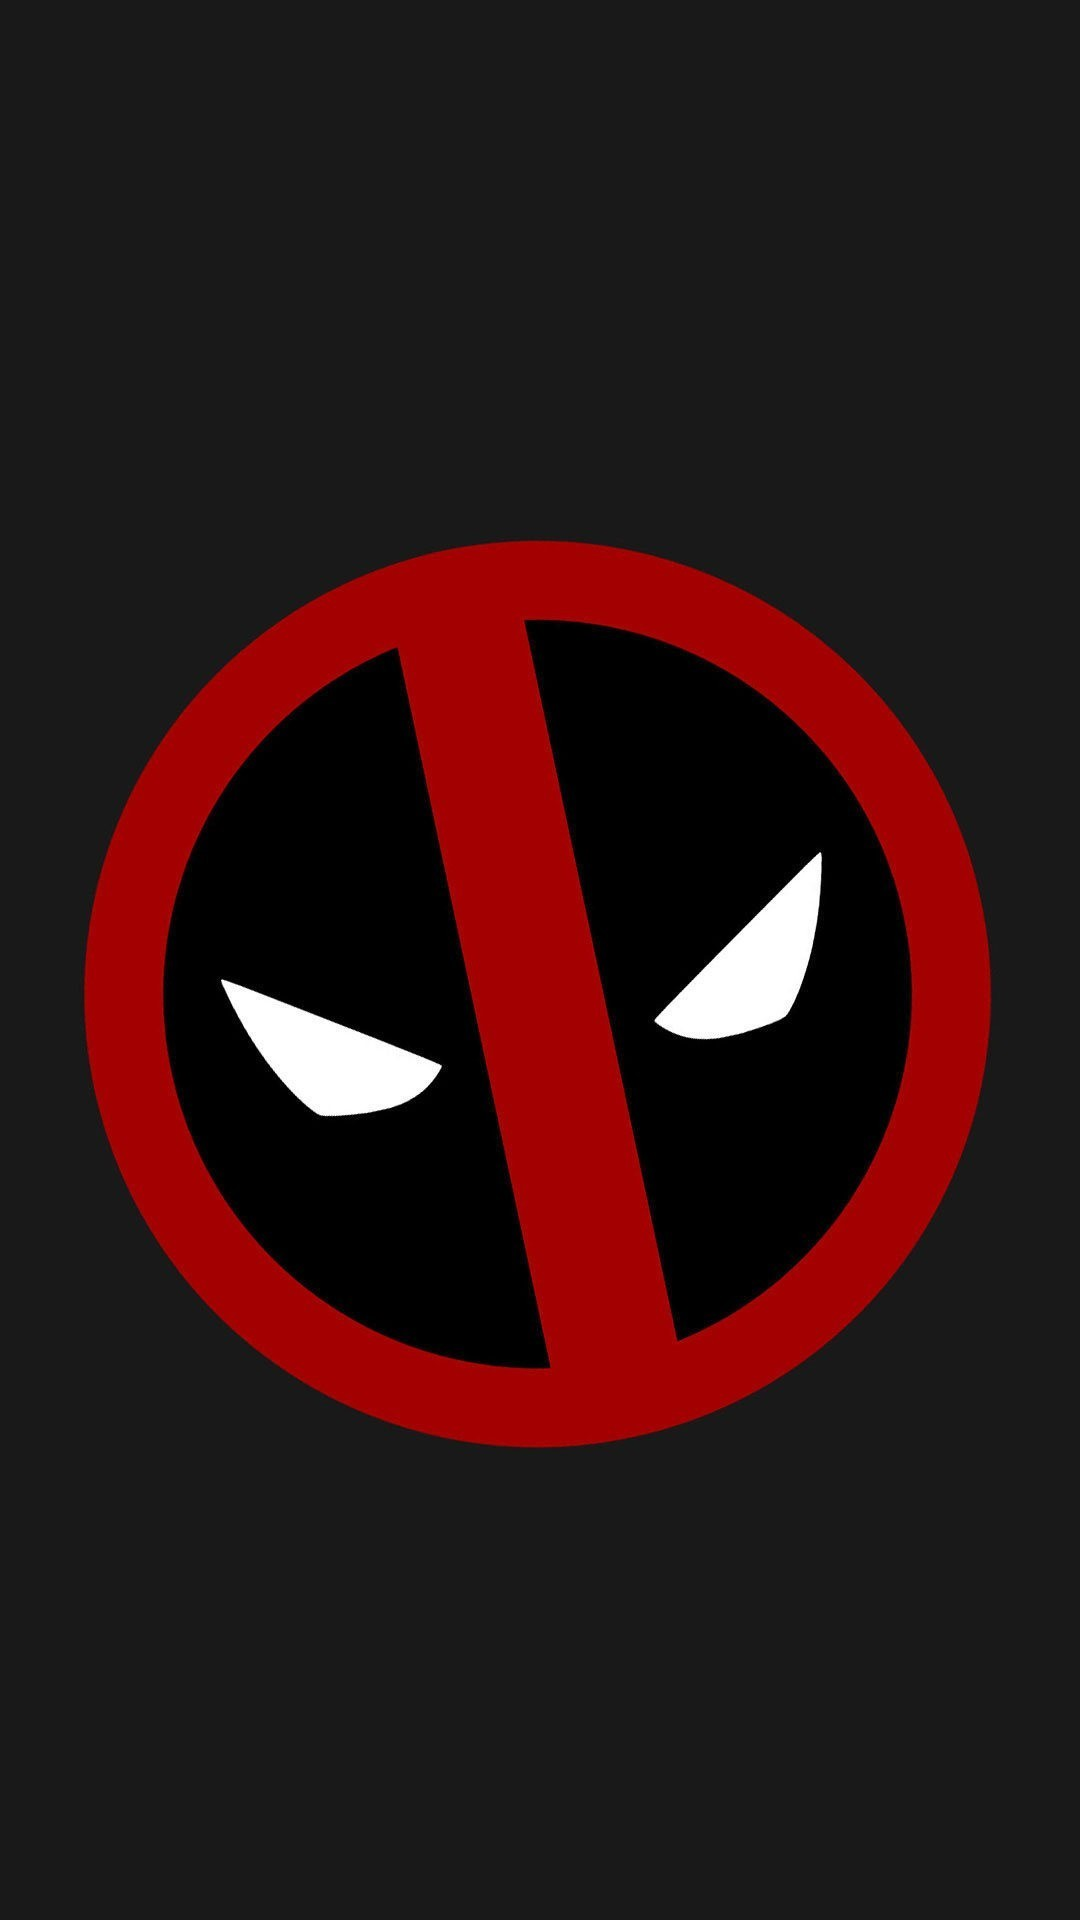 1080x1920 Deadpool logo